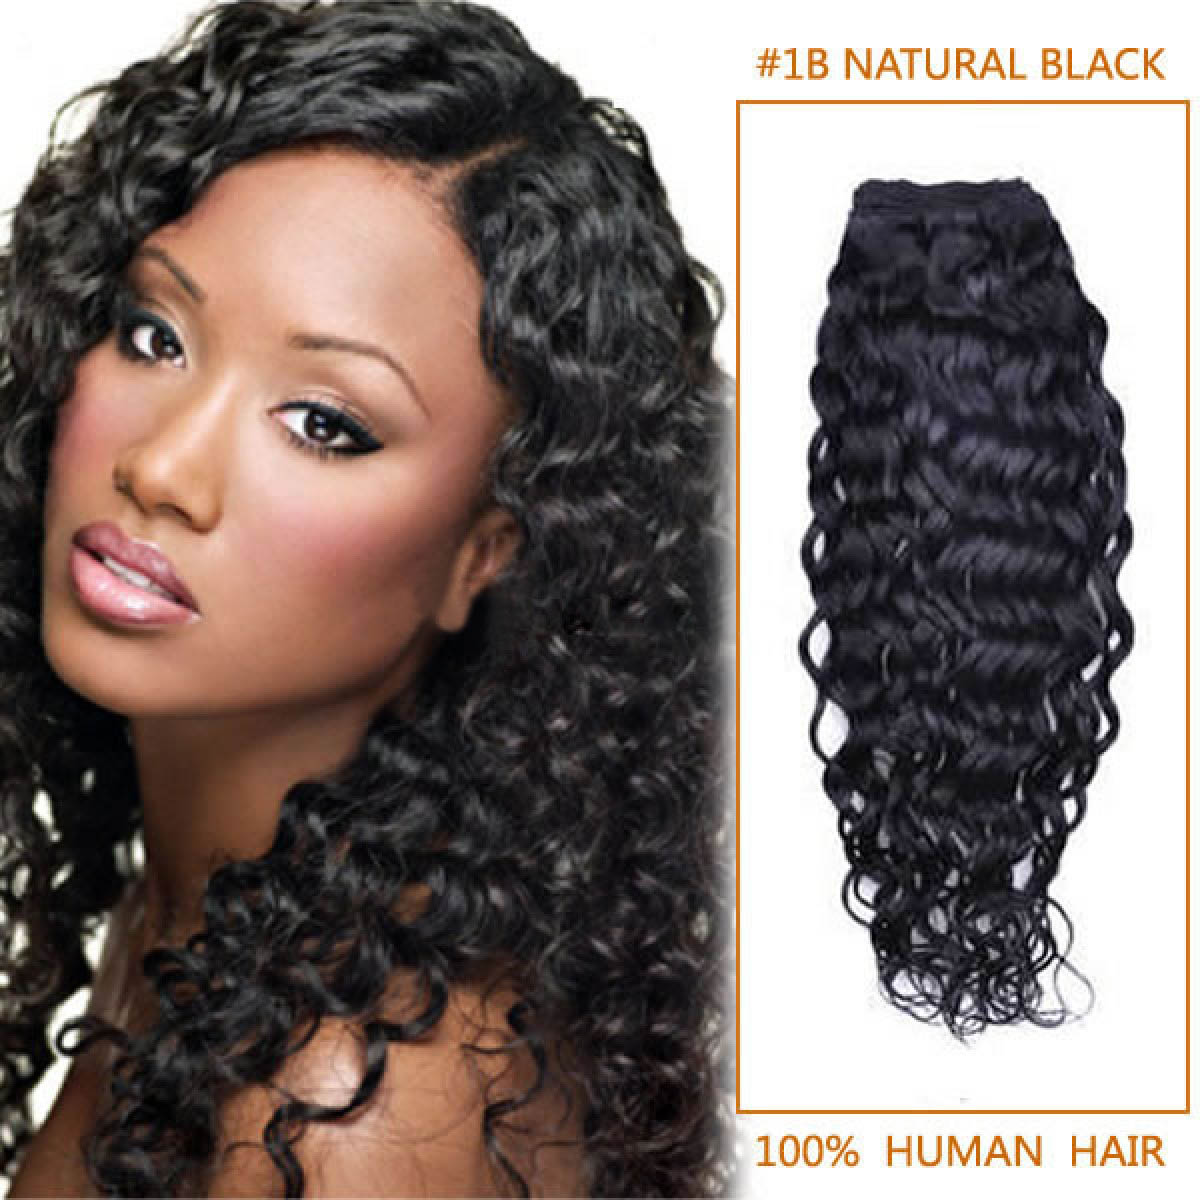 10 Inch 1b Natural Black Curly Indian Remy Hair Wefts